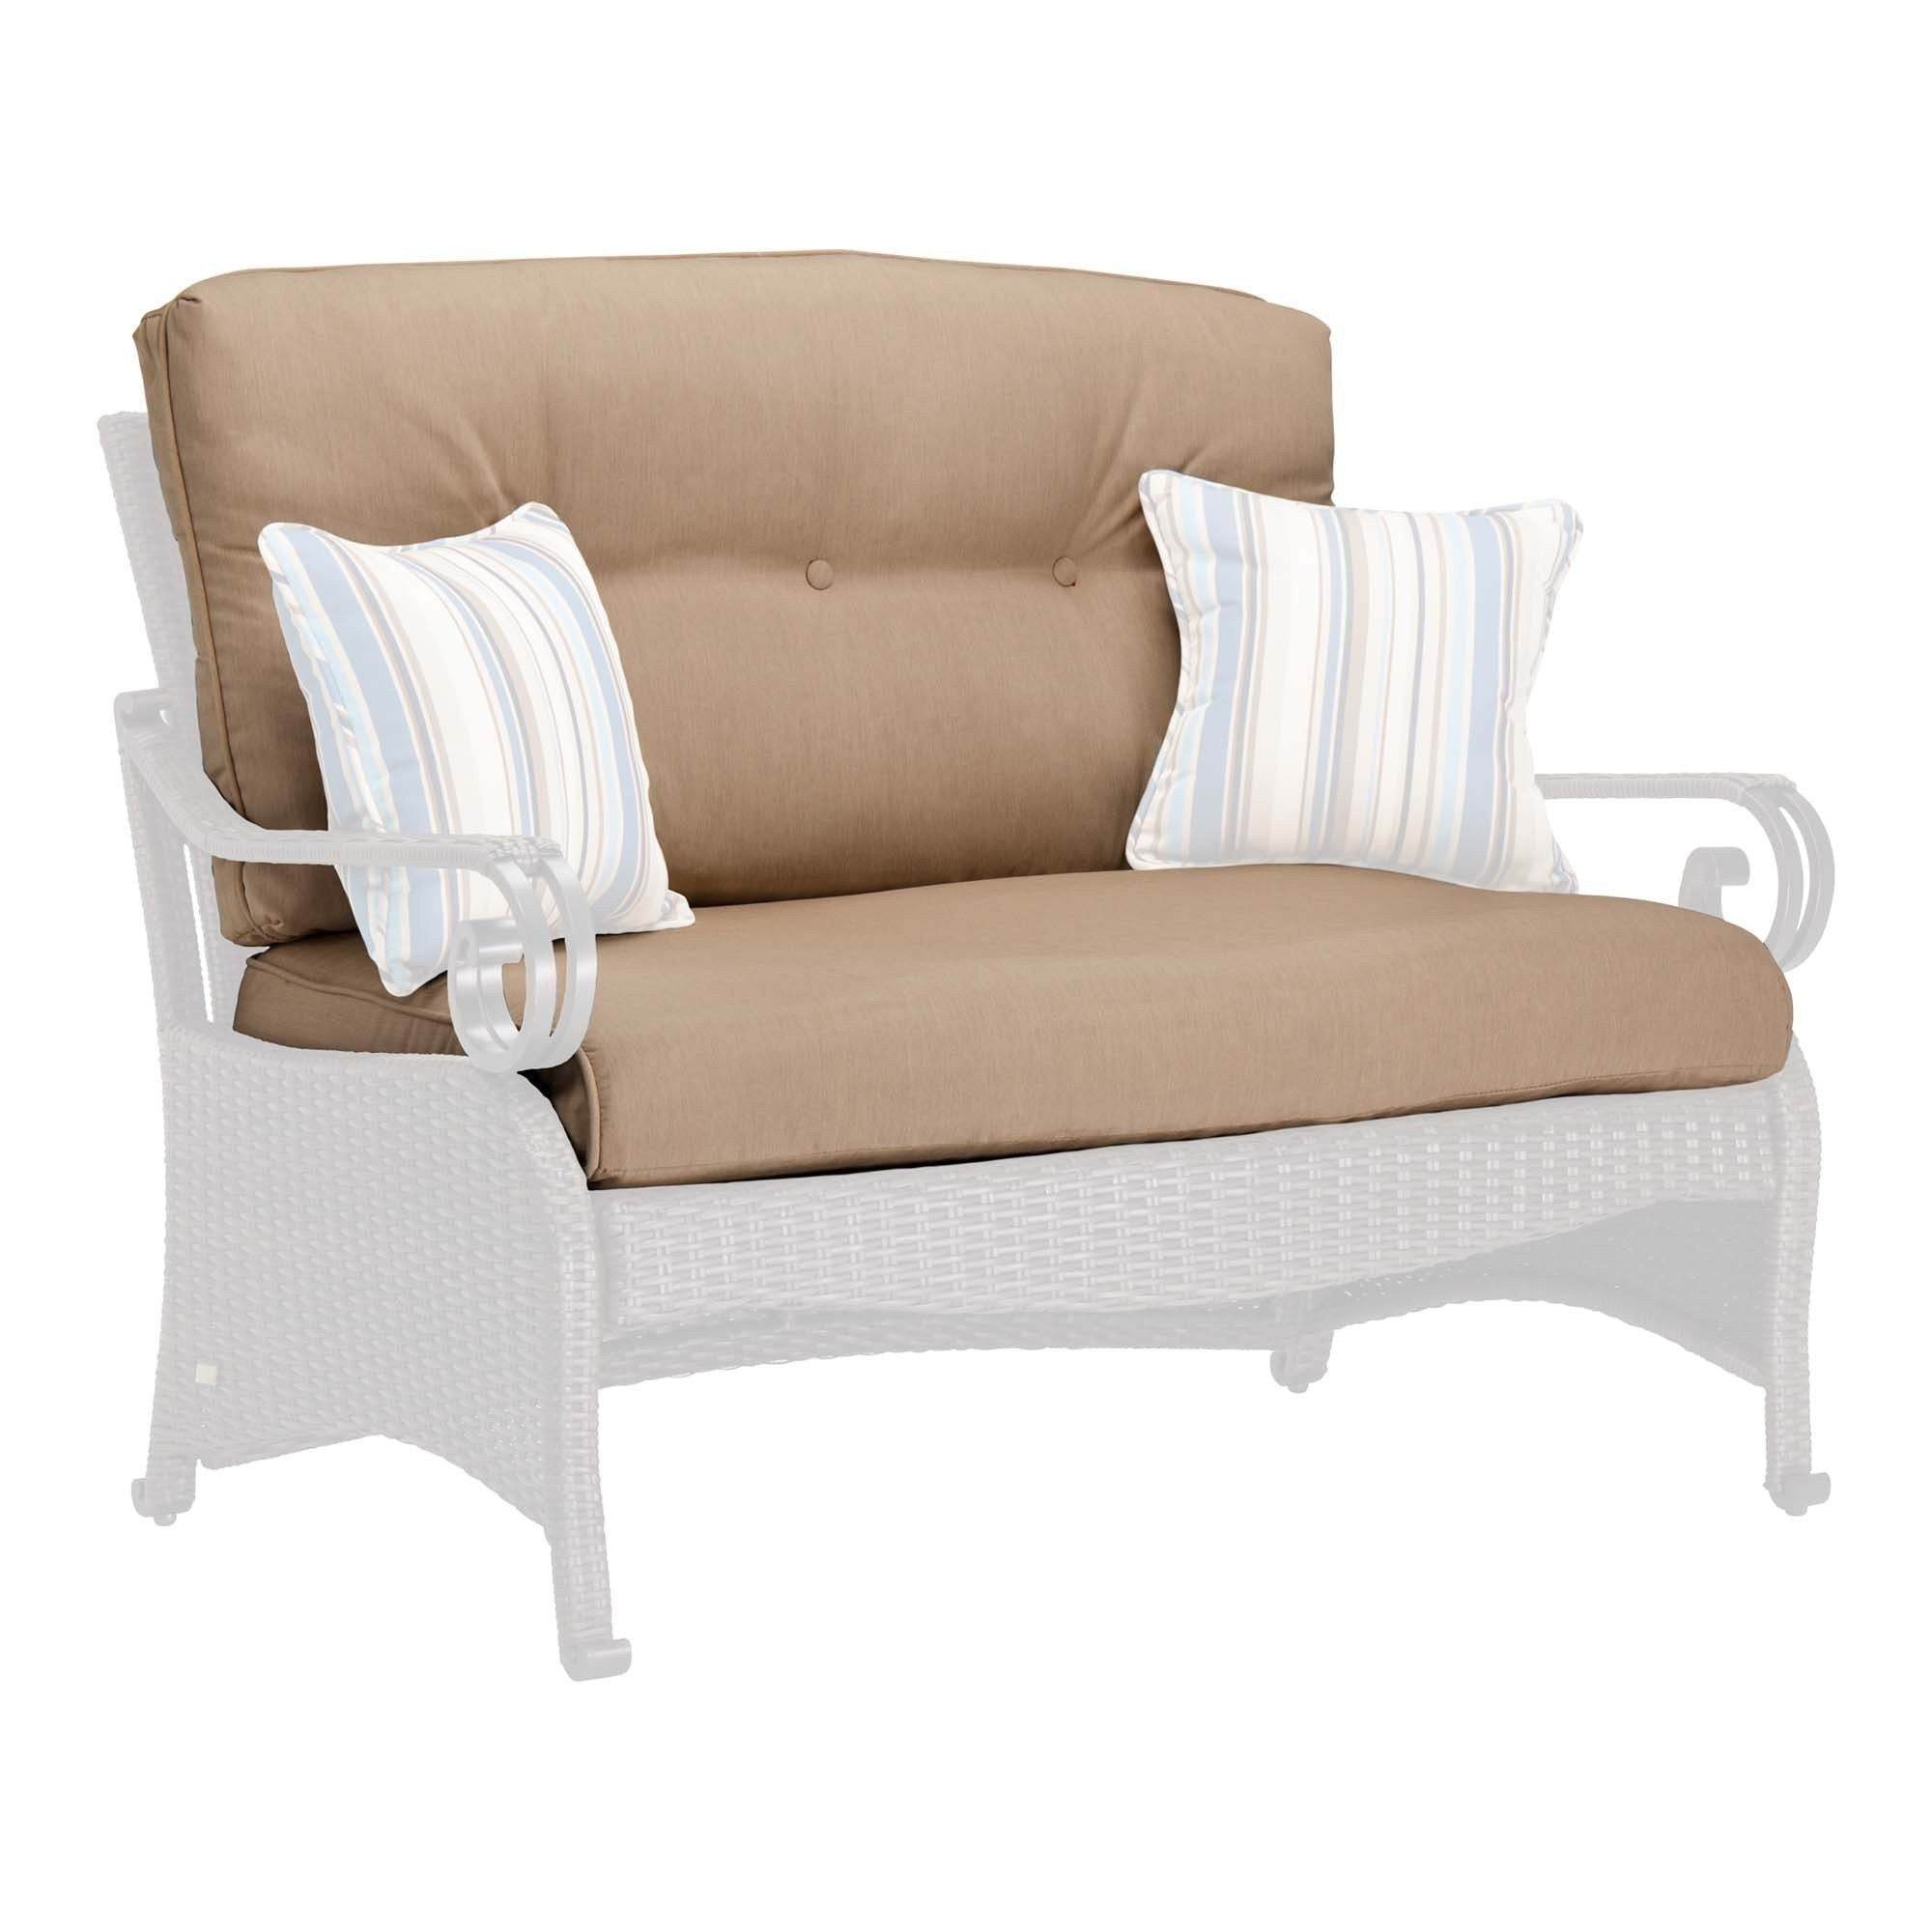 Patio loveseat wicker espresso finish patio loveseat with cushion and pillows garden furniture Loveseat cushions for outdoor furniture